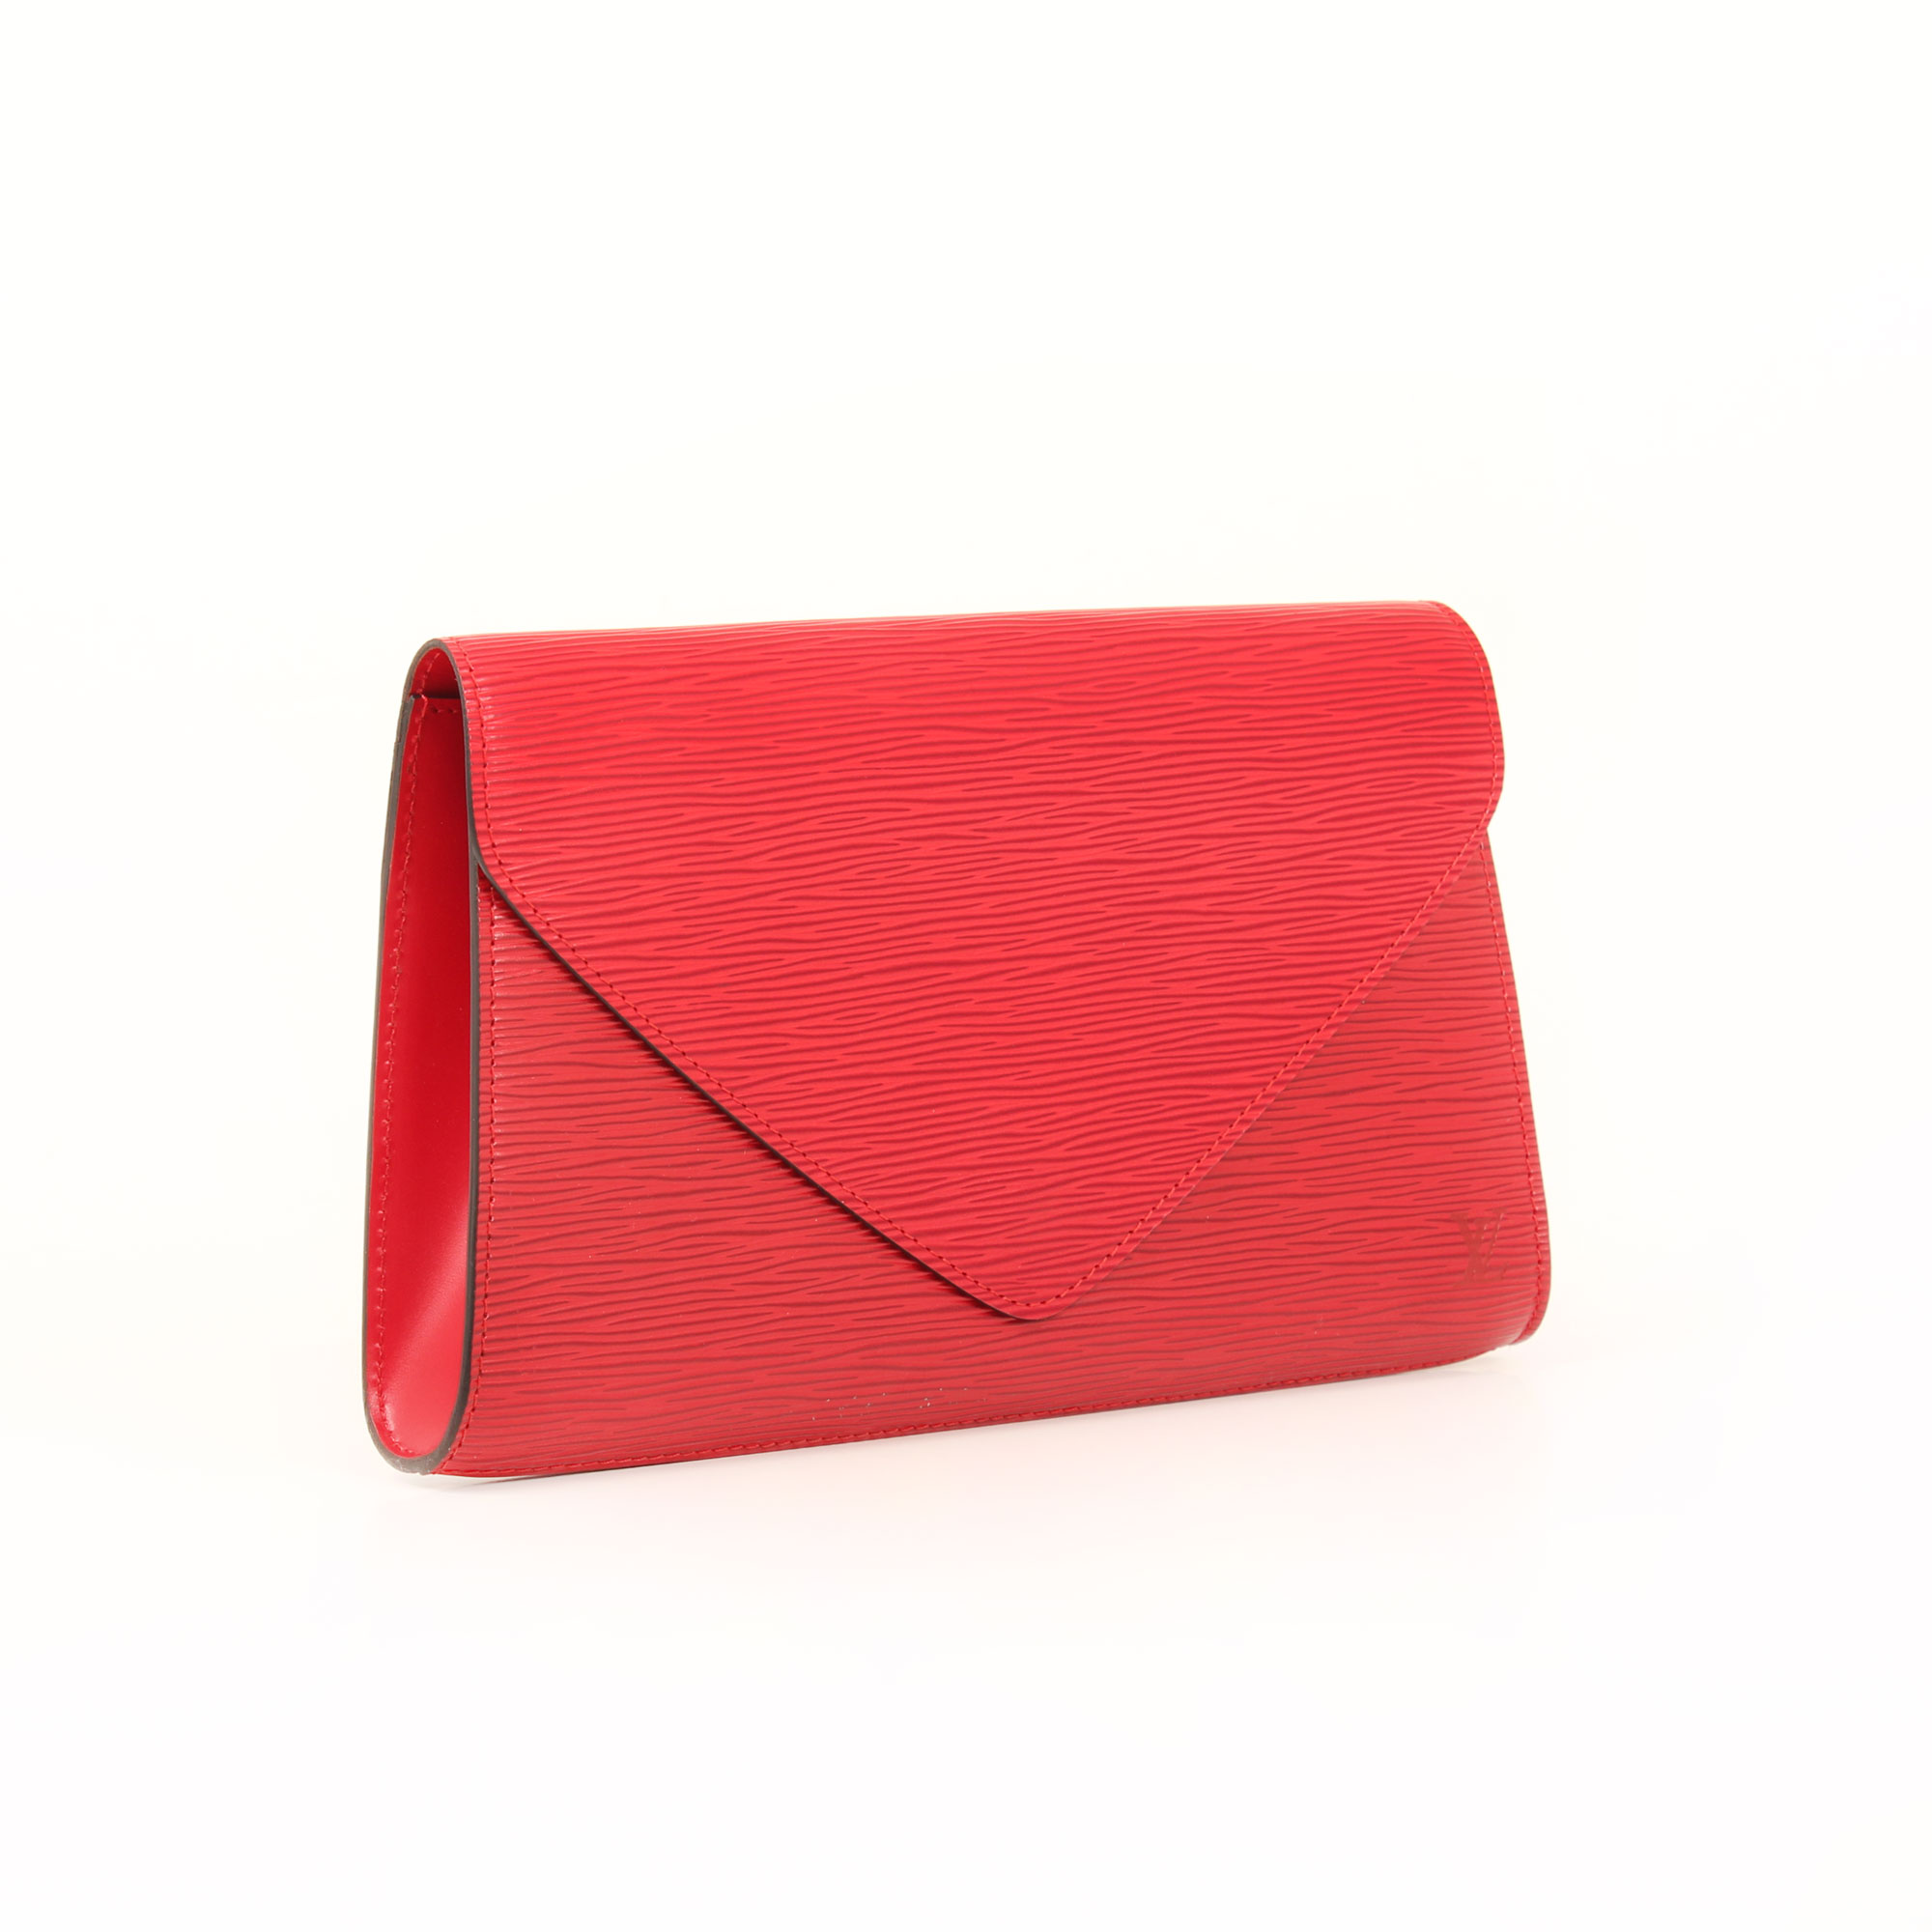 General 2 image of louis vuitton vintage red epi clutch